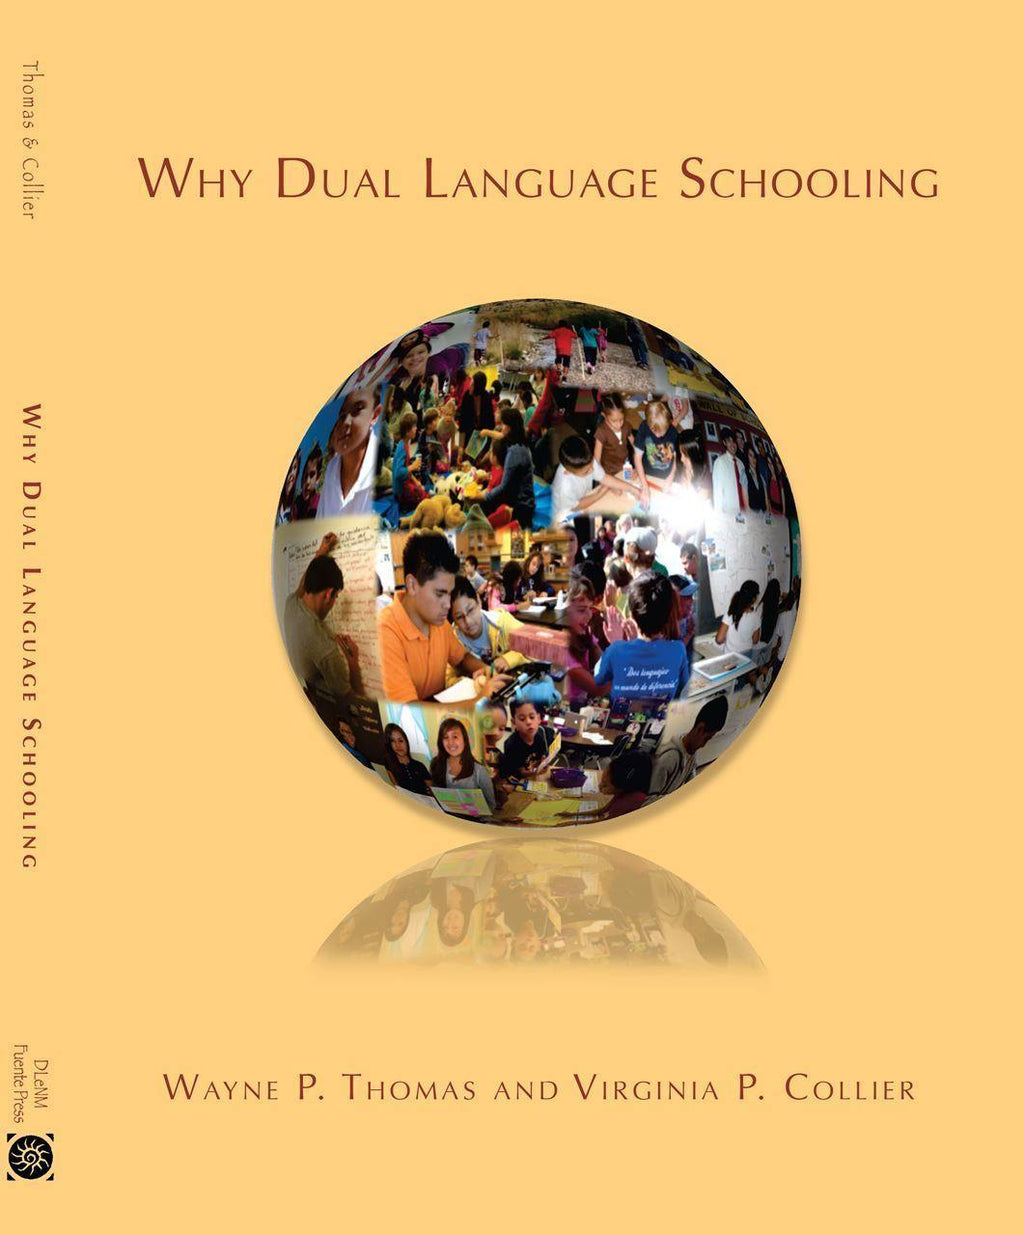 Book 4 - Why Dual Language Schooling